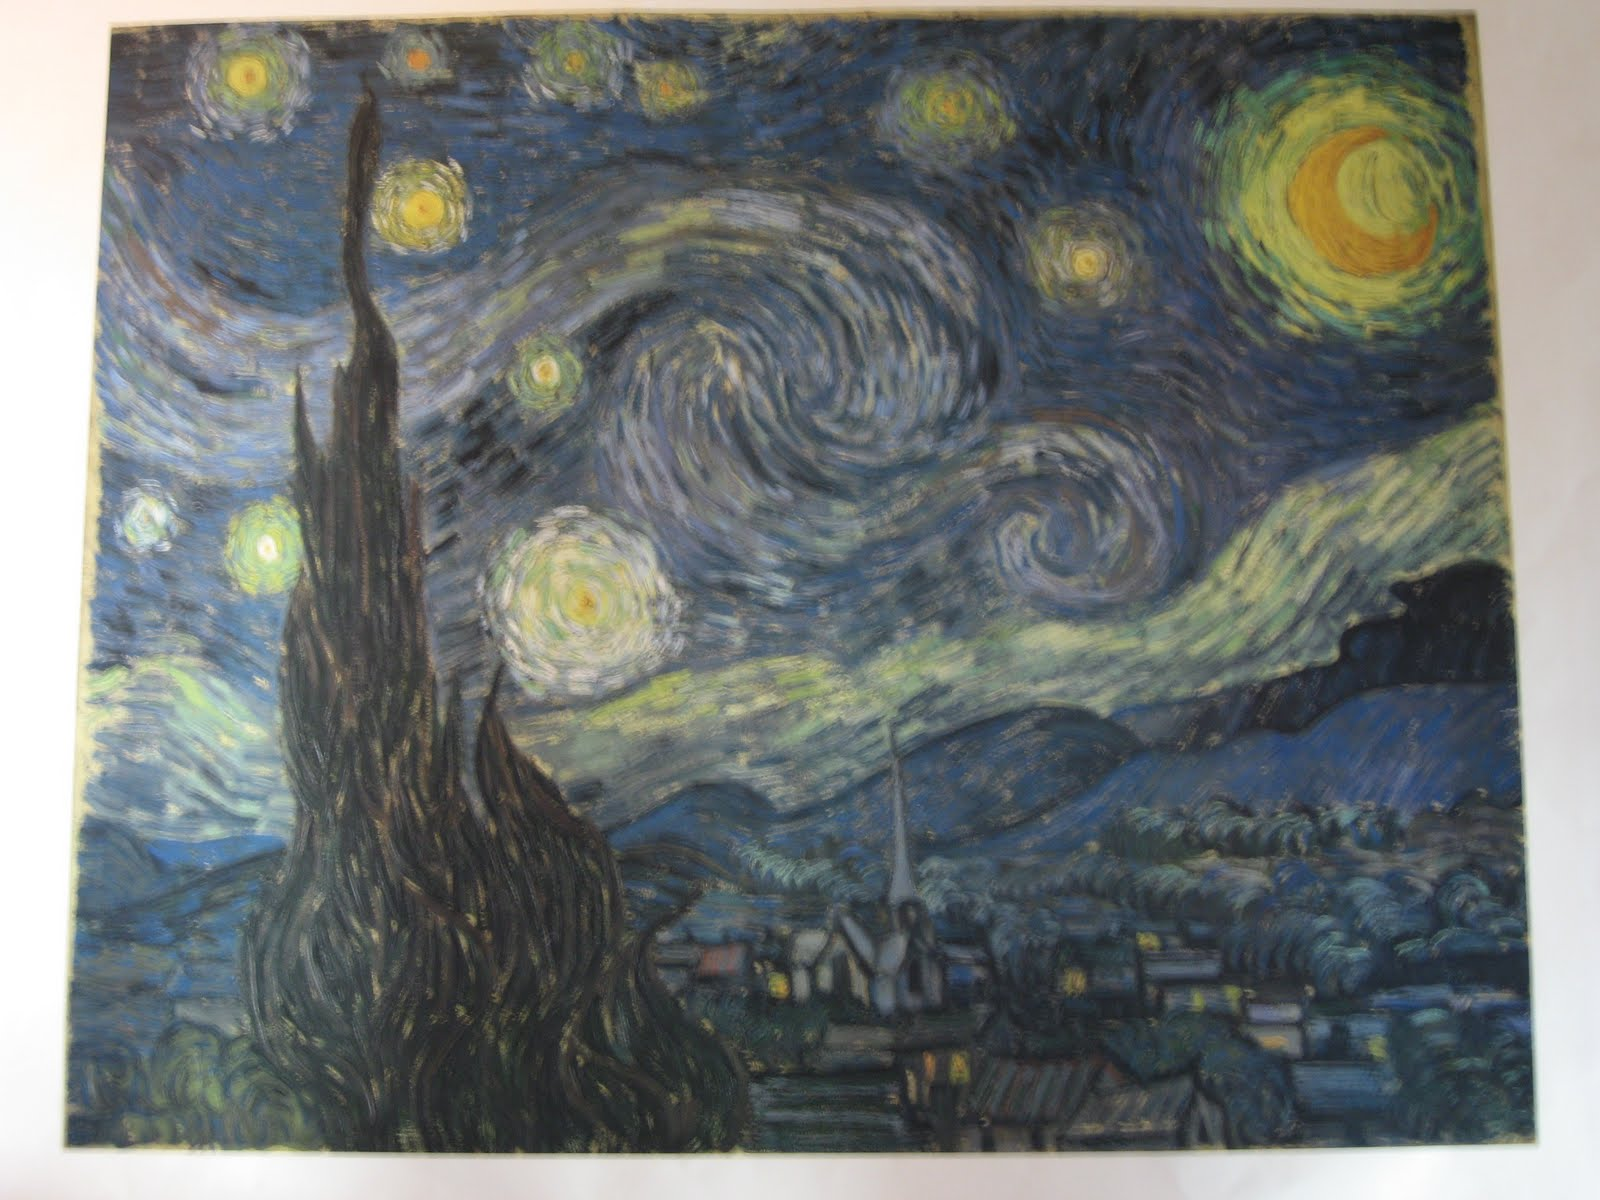 society by design starry night designed by artist vincent van gogh